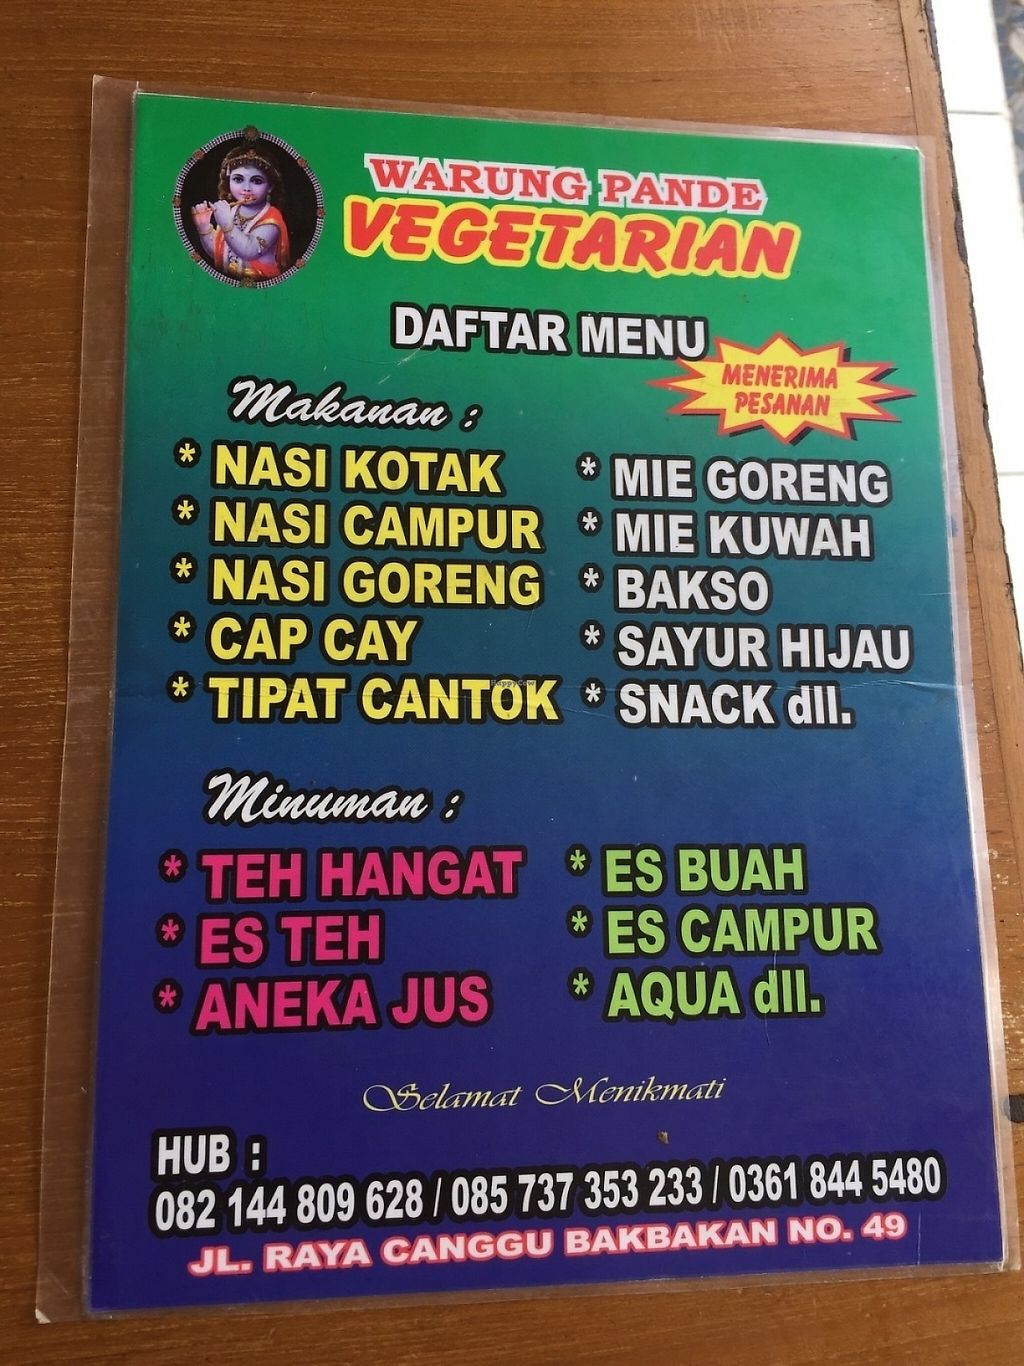 """Photo of Pande Vegetarian  by <a href=""""/members/profile/RajDollar"""">RajDollar</a> <br/>Menu inside <br/> May 31, 2017  - <a href='/contact/abuse/image/93140/264462'>Report</a>"""